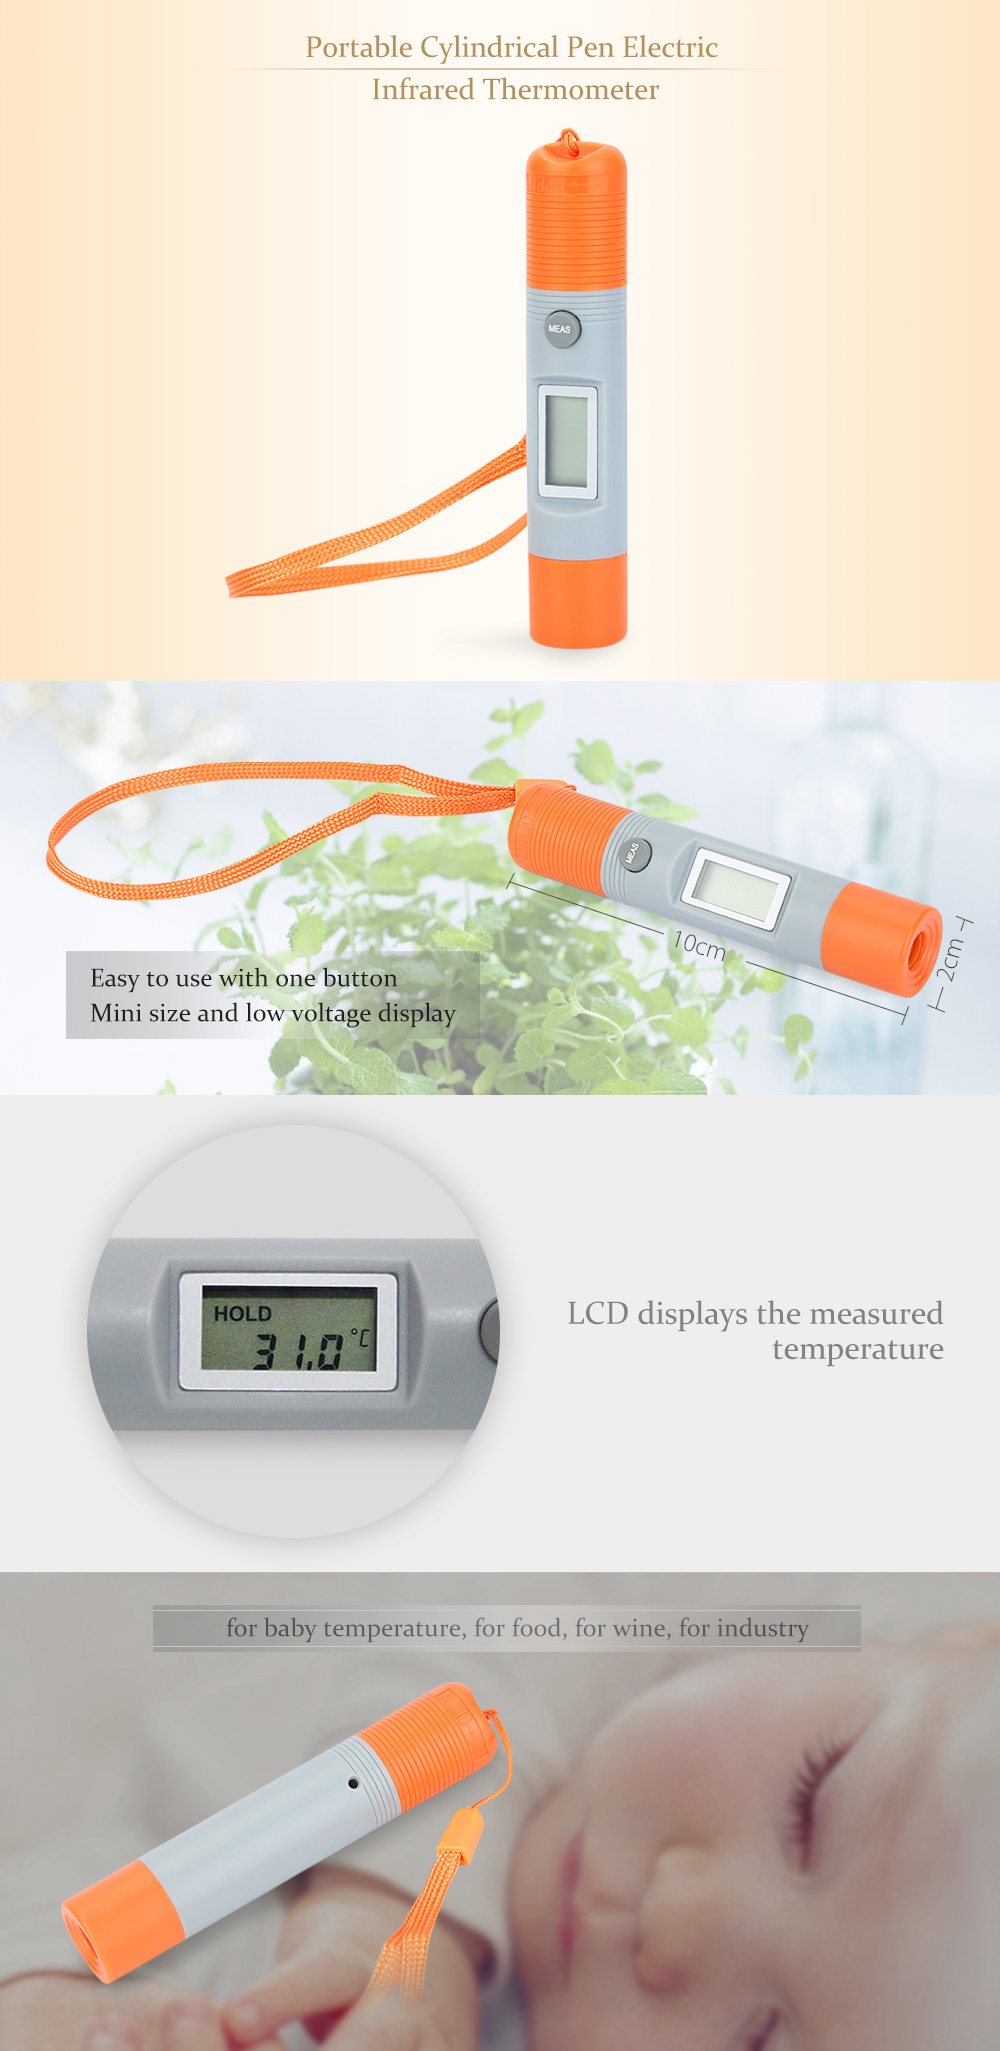 Portable Cylindrical Pen Electric Infrared Thermometer